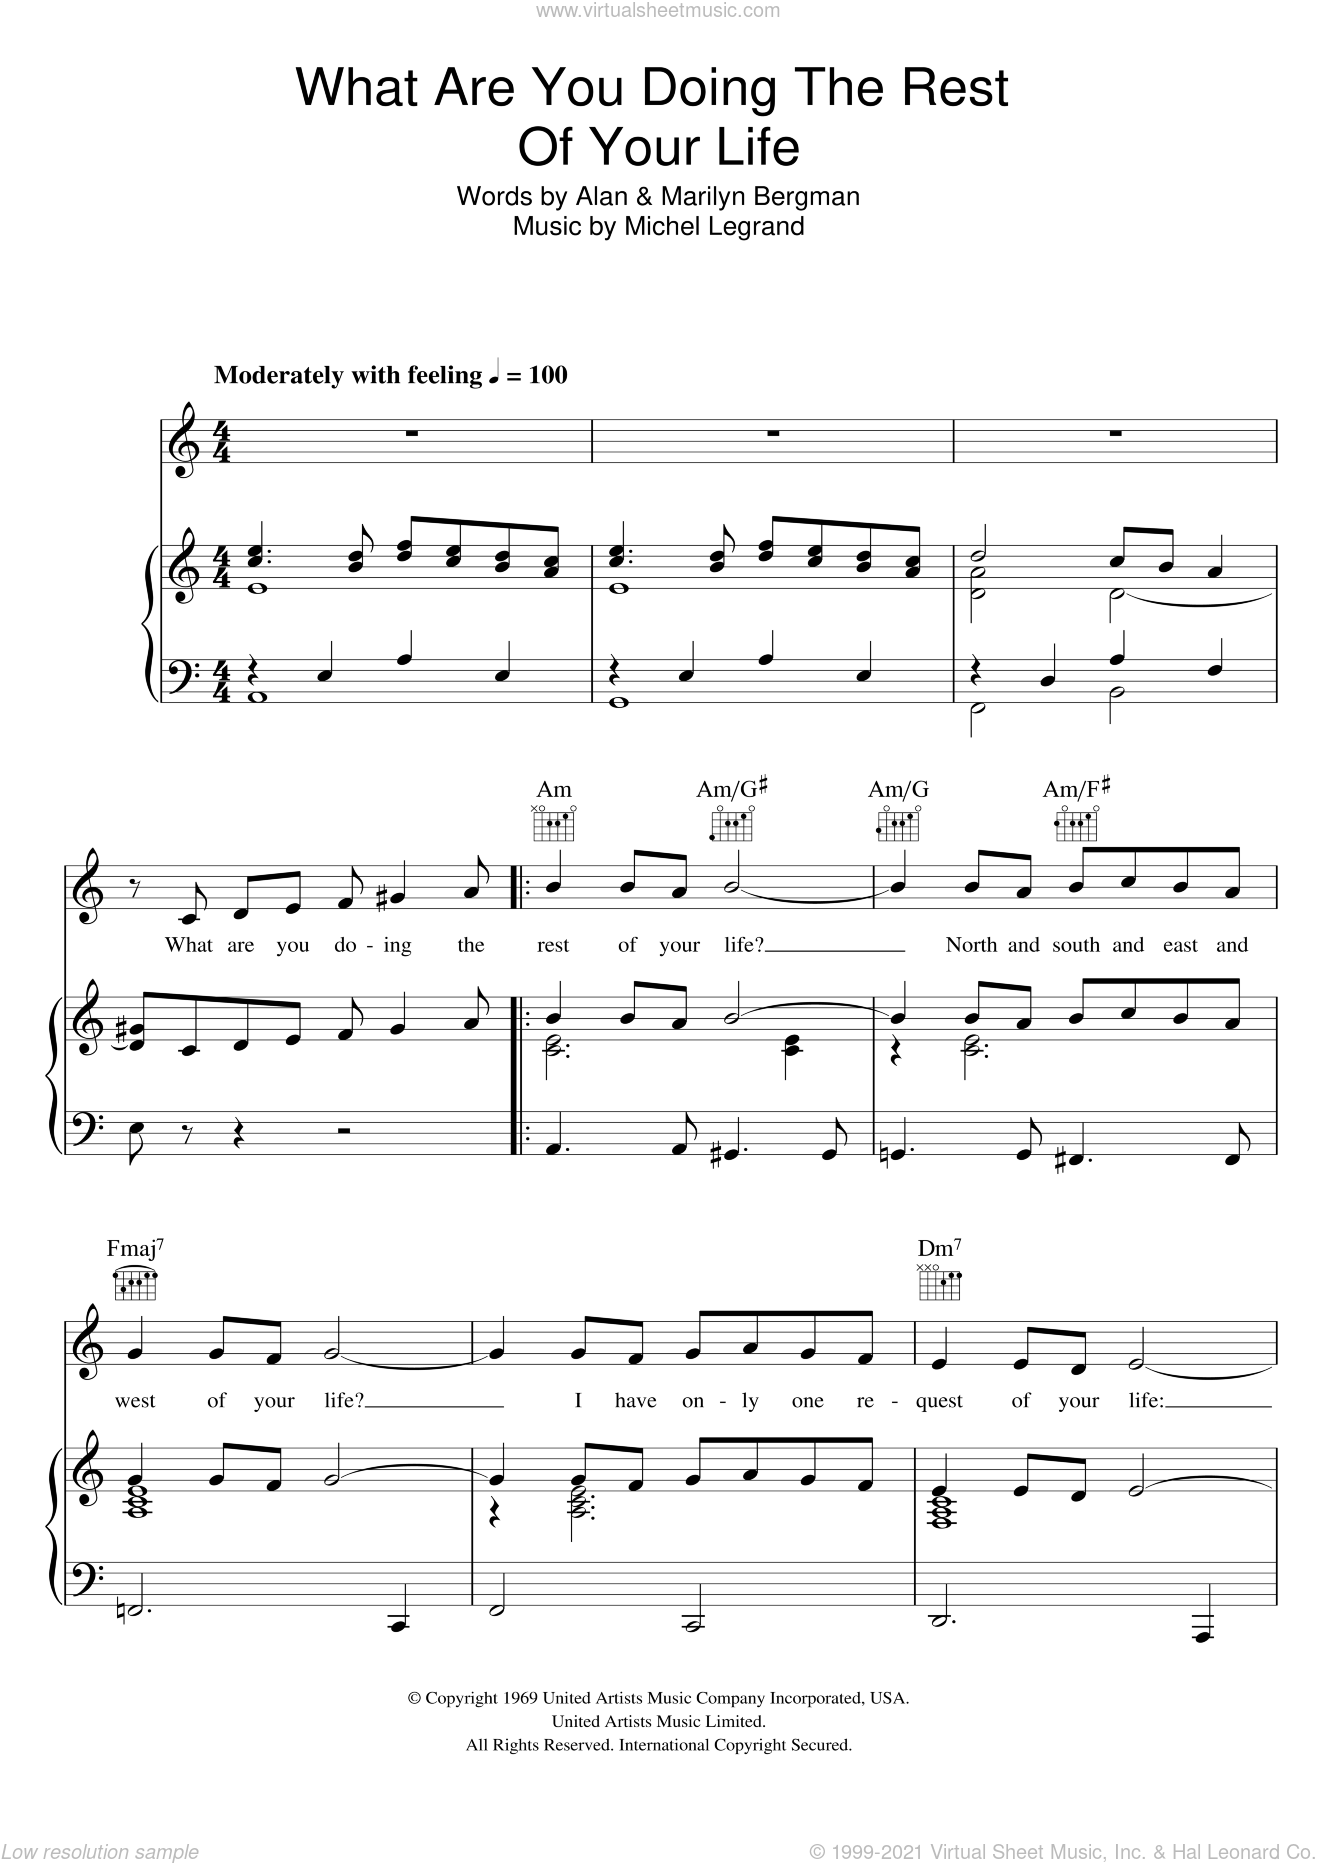 What Are You Doing The Rest Of Your Life sheet music for voice, piano or guitar by Marilyn Bergman